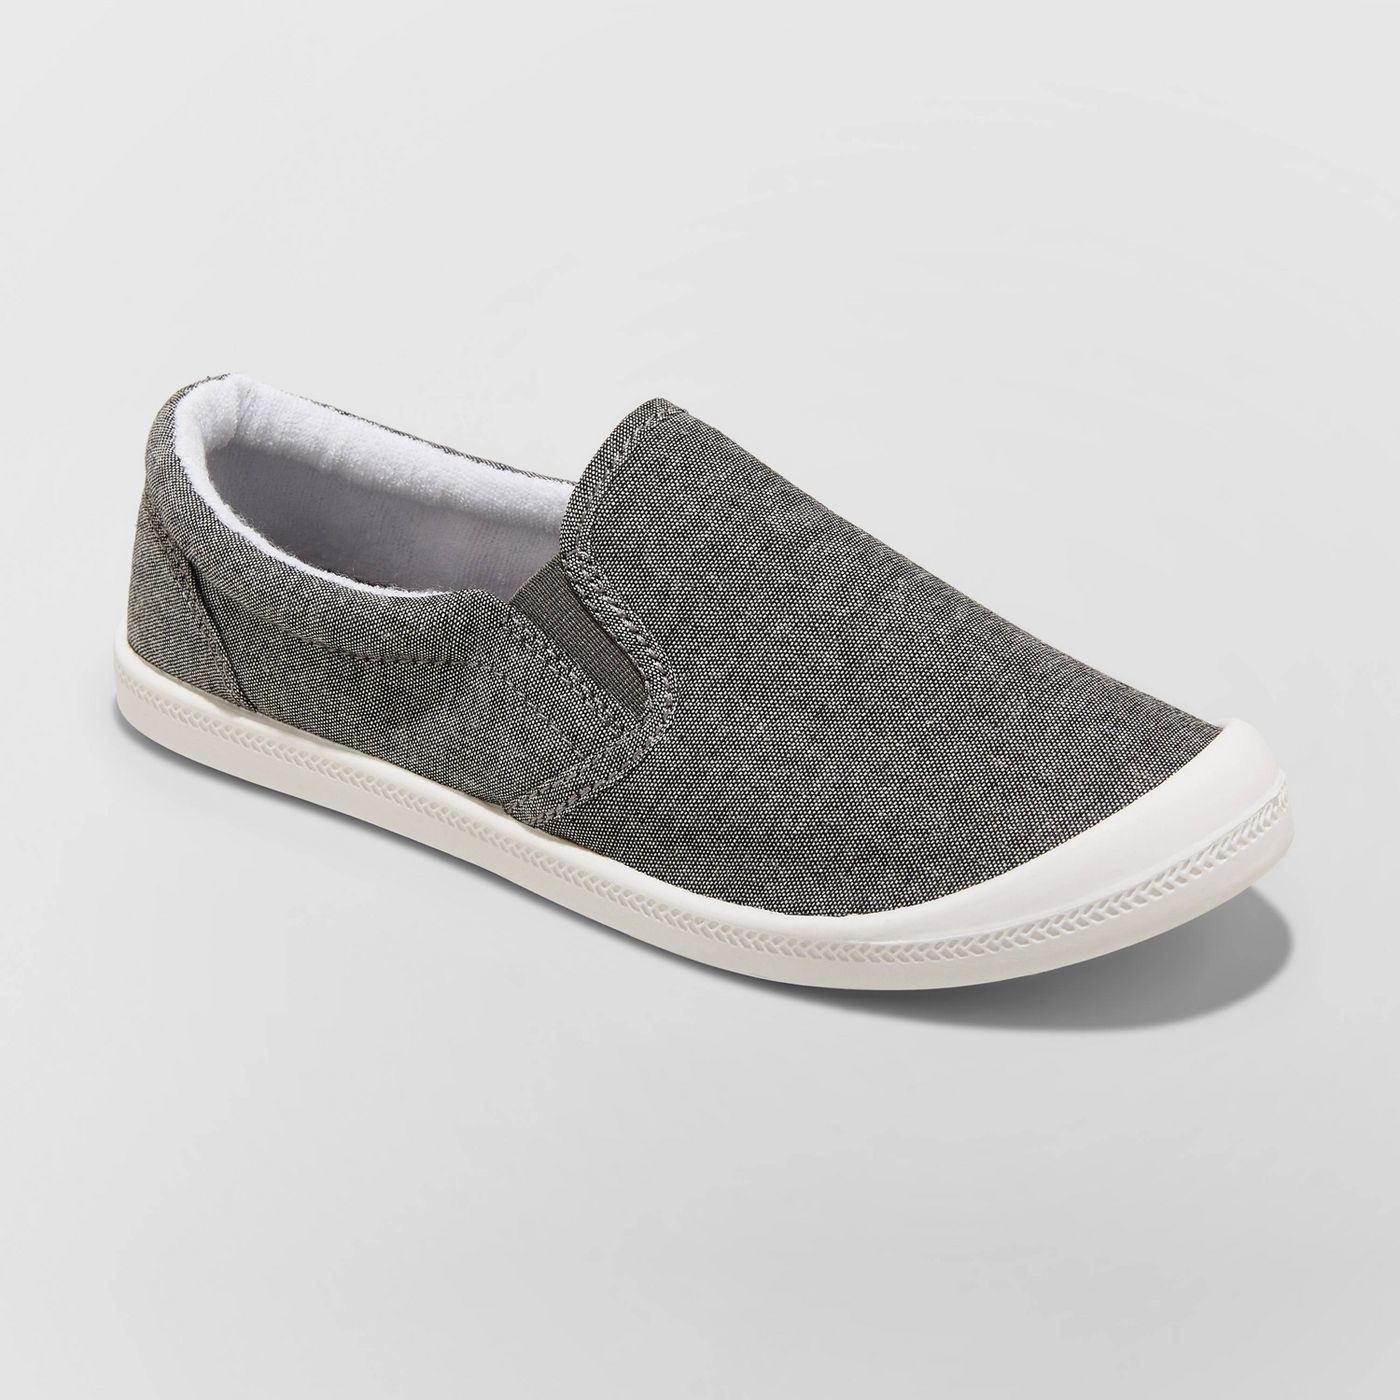 The charcoal sneaker